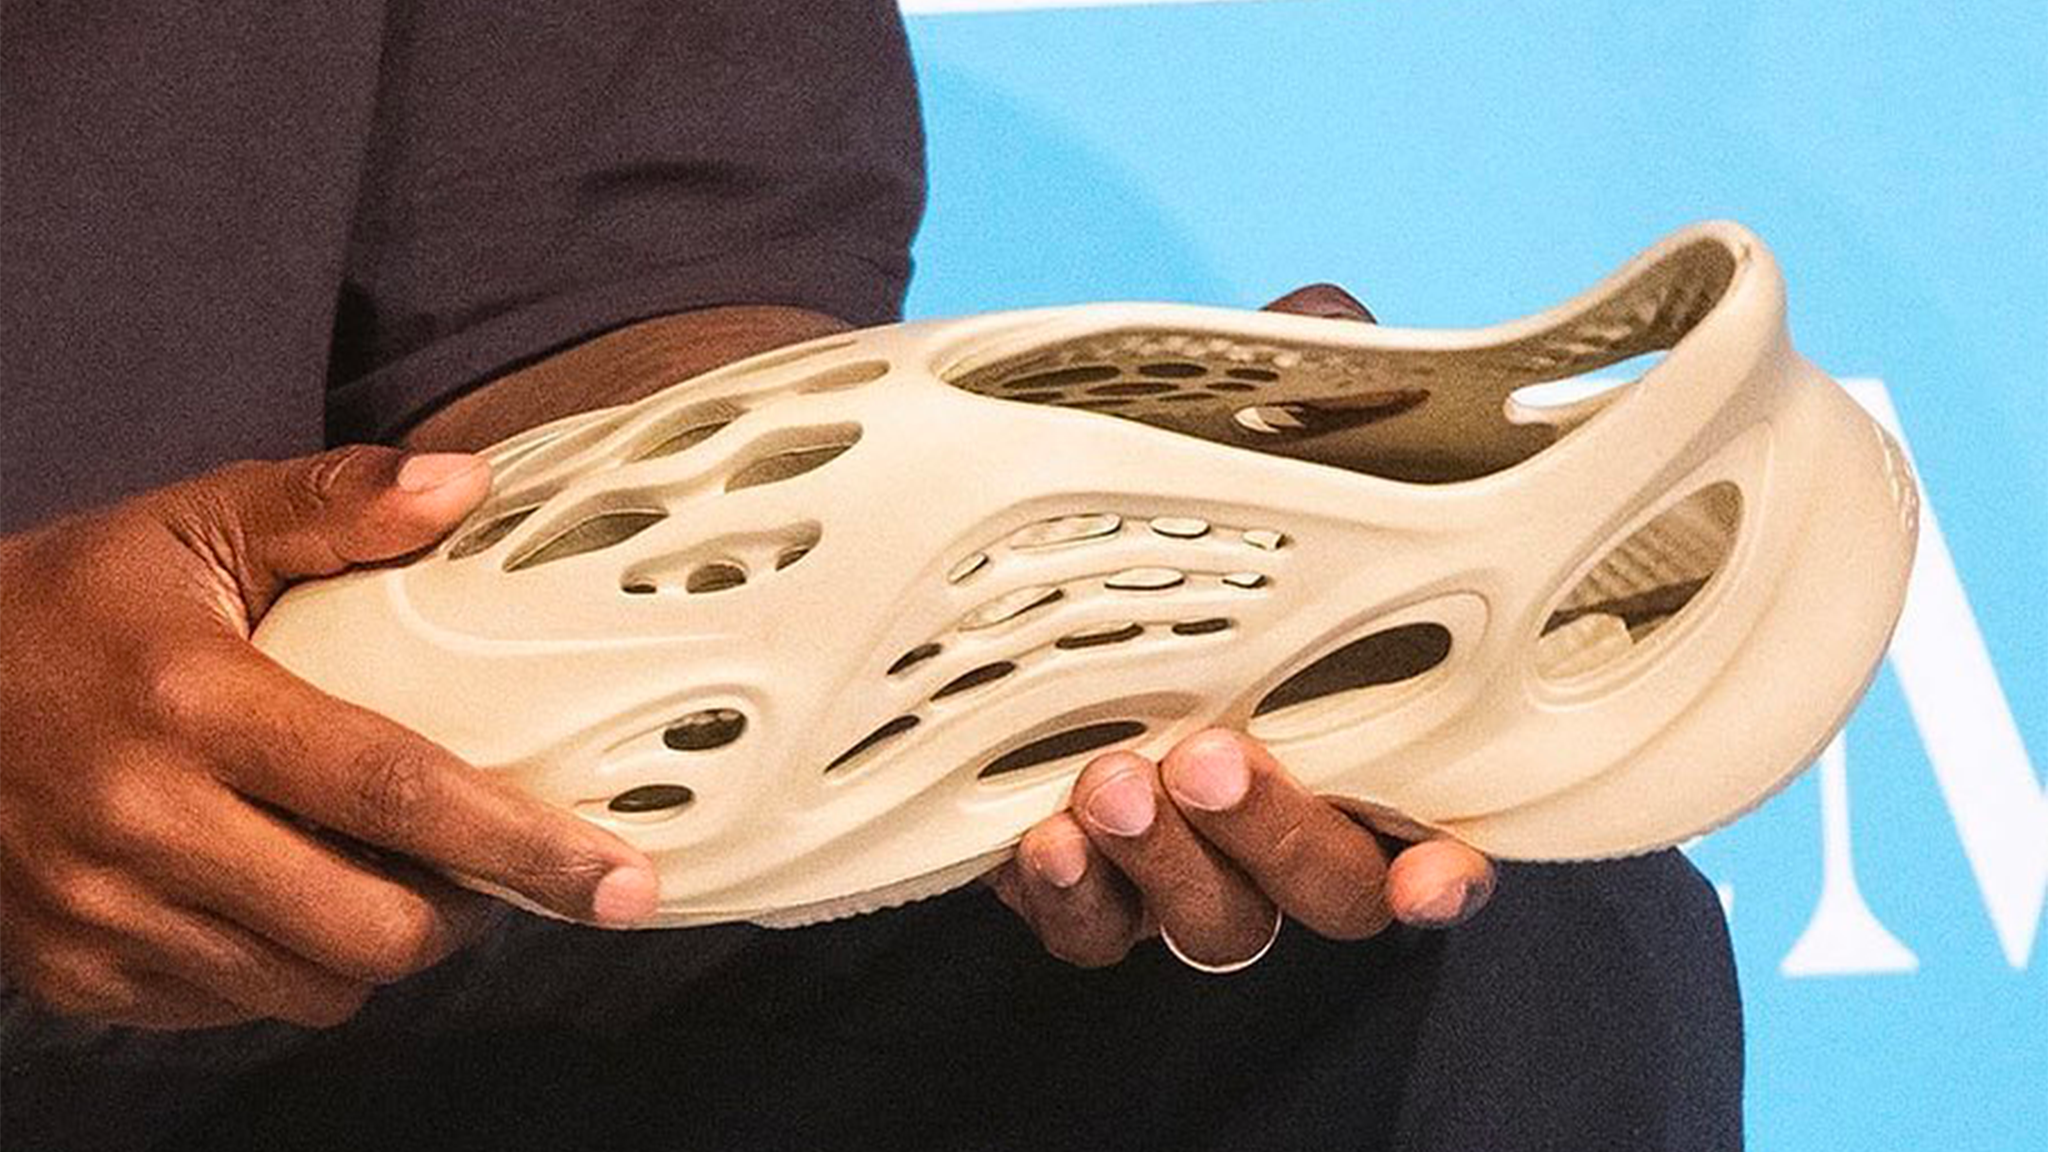 yeezy bowling shoes